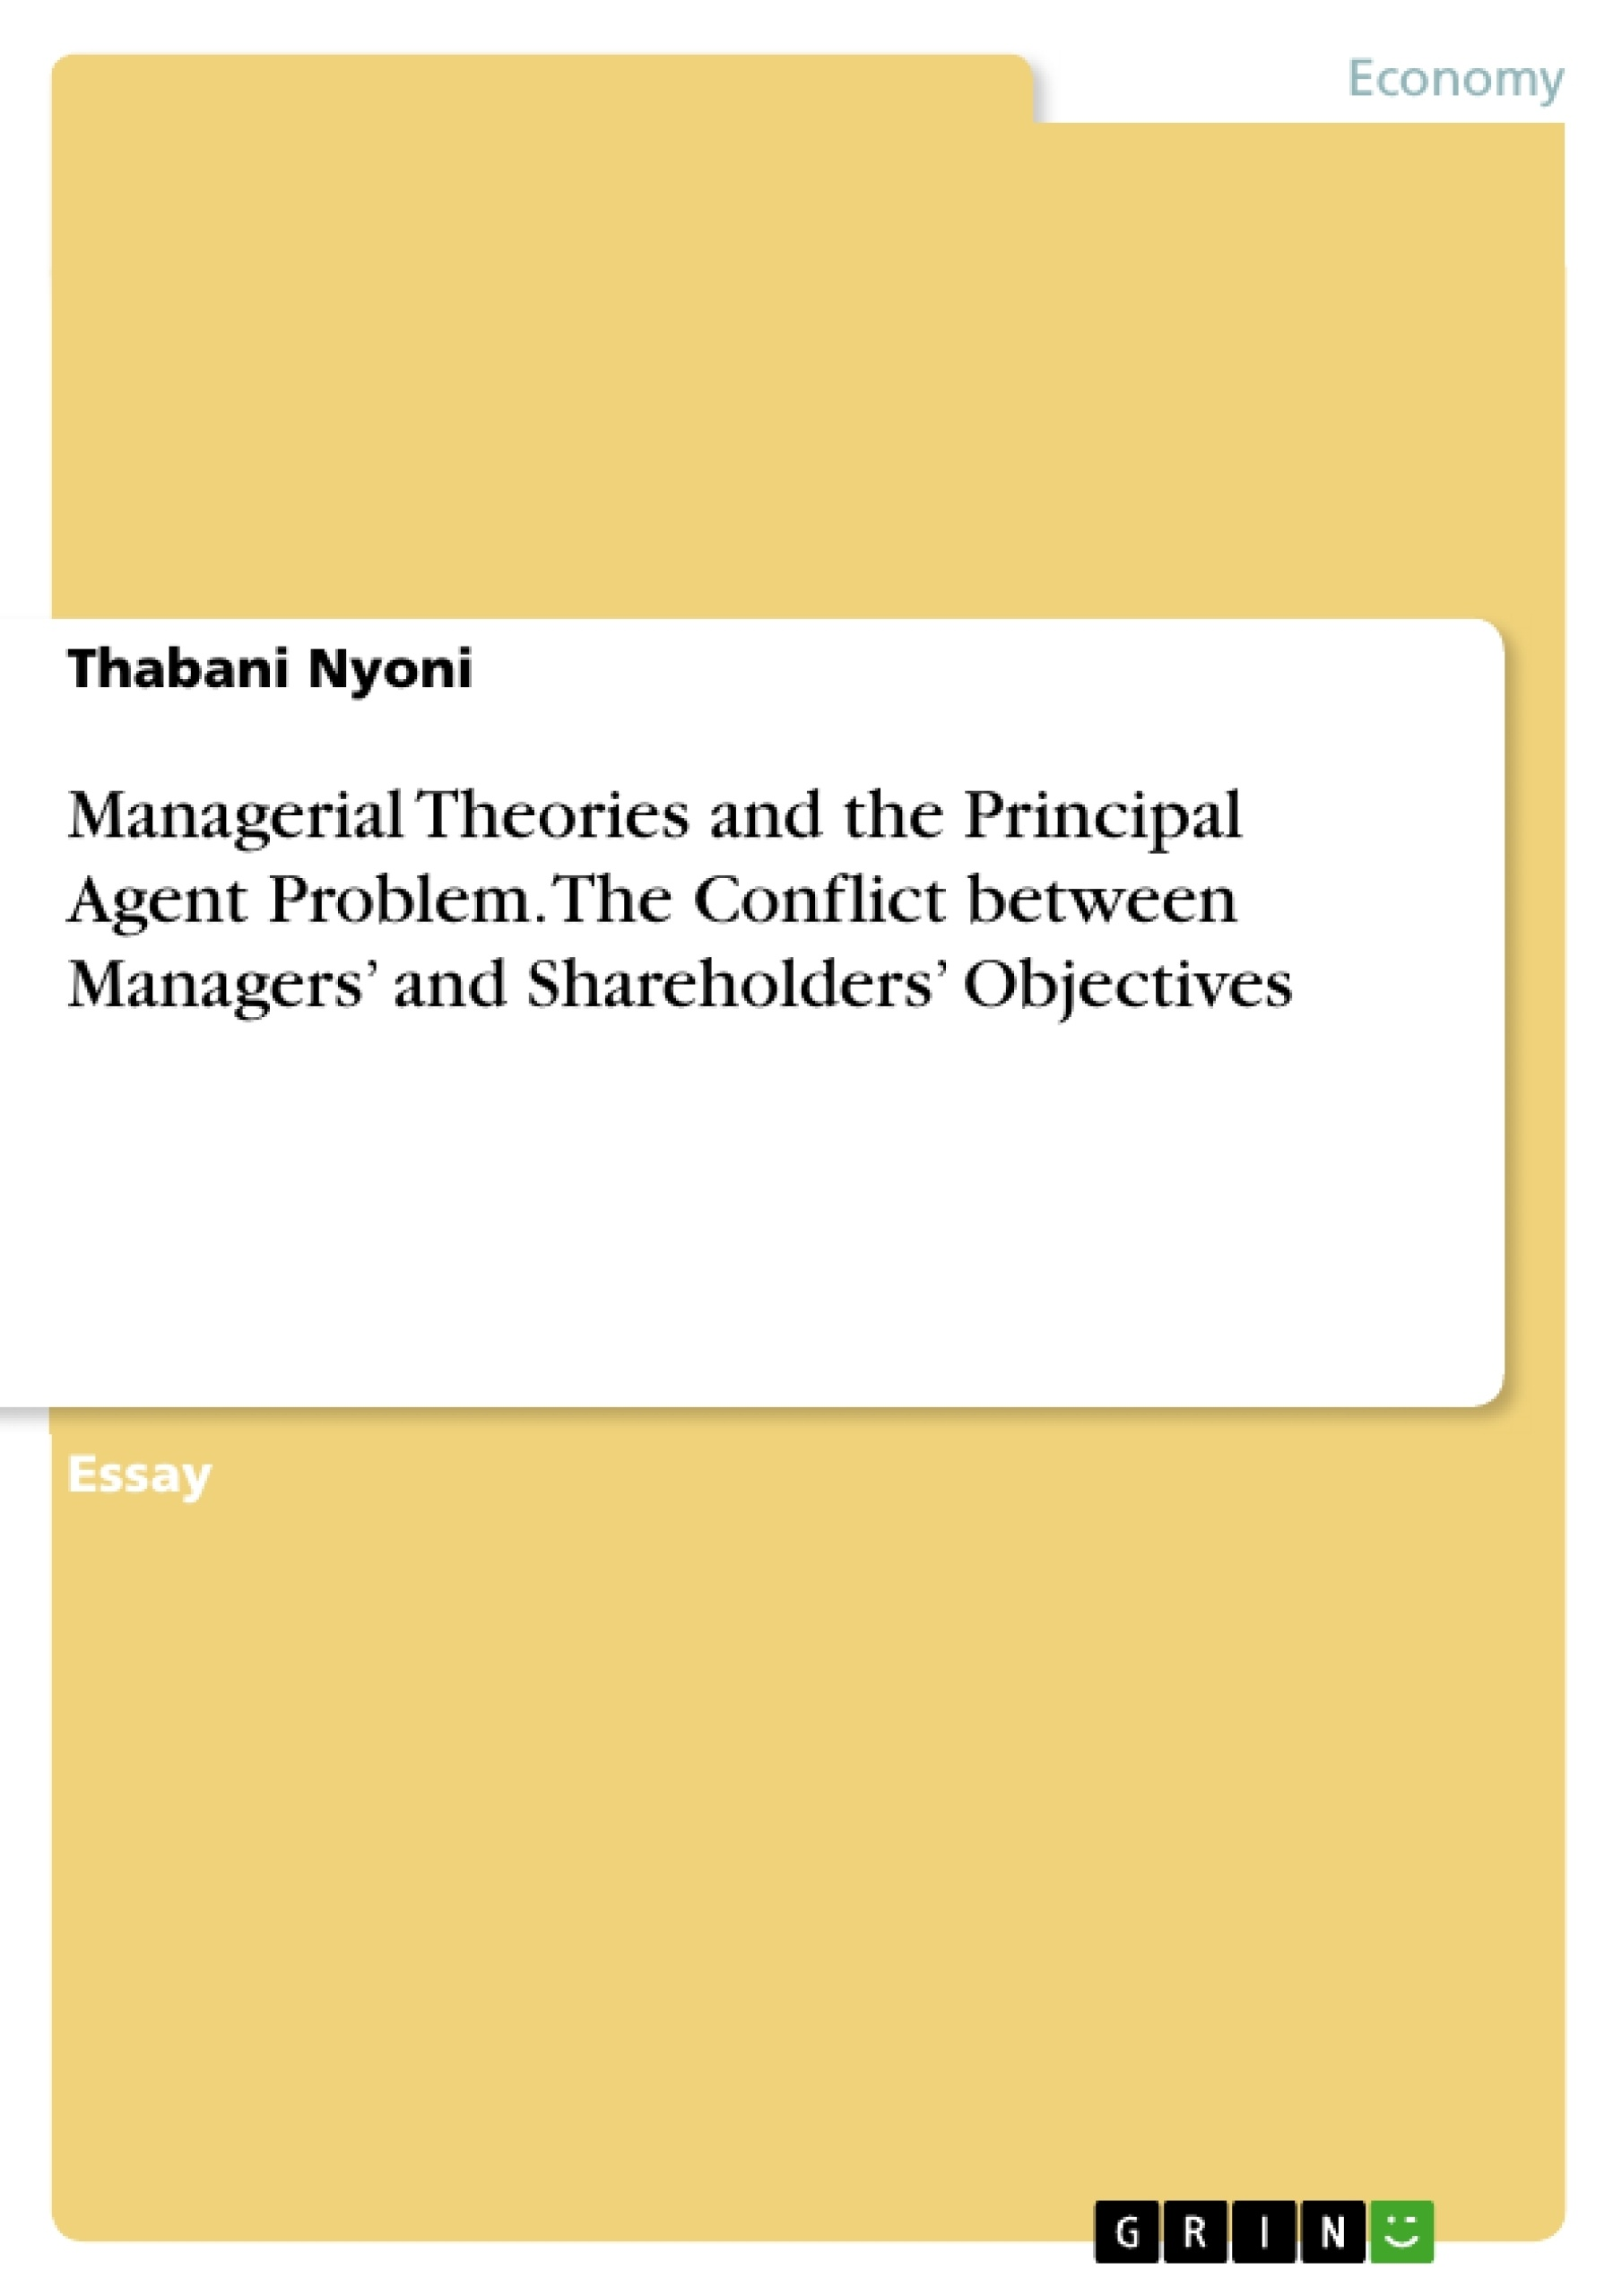 Title: Managerial Theories and the Principal Agent Problem. The Conflict between Managers' and Shareholders' Objectives